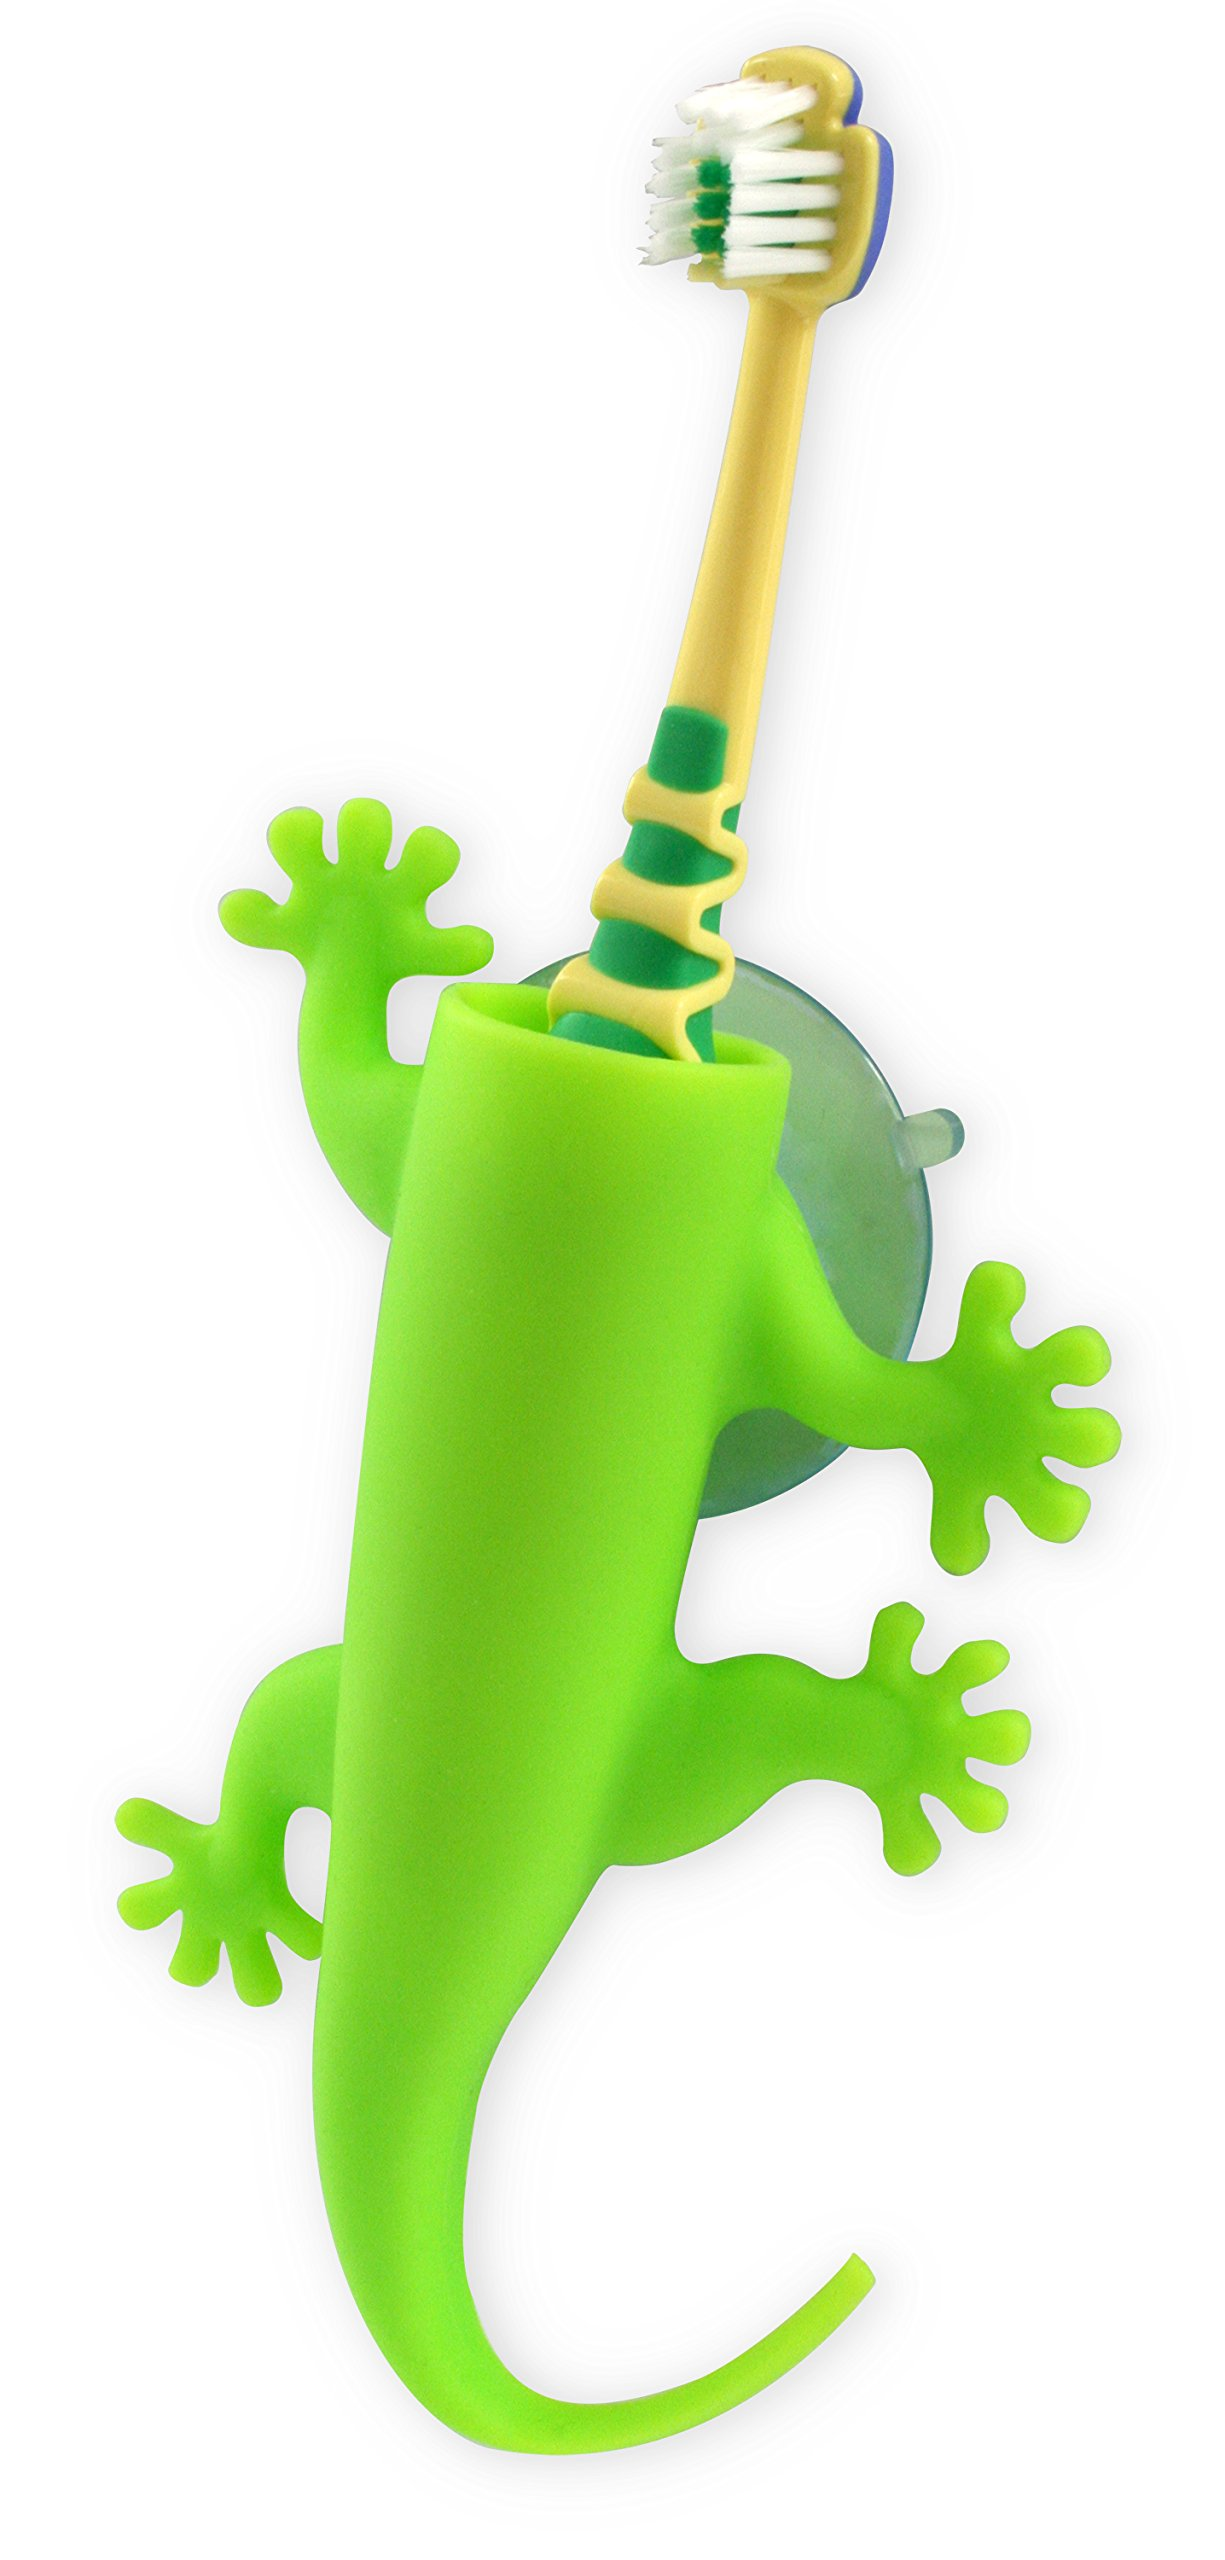 j-me Wall Mounted Toothbrush Holder - Kid's Bathroom Tidy, Larry The Lizard, Green by j-me